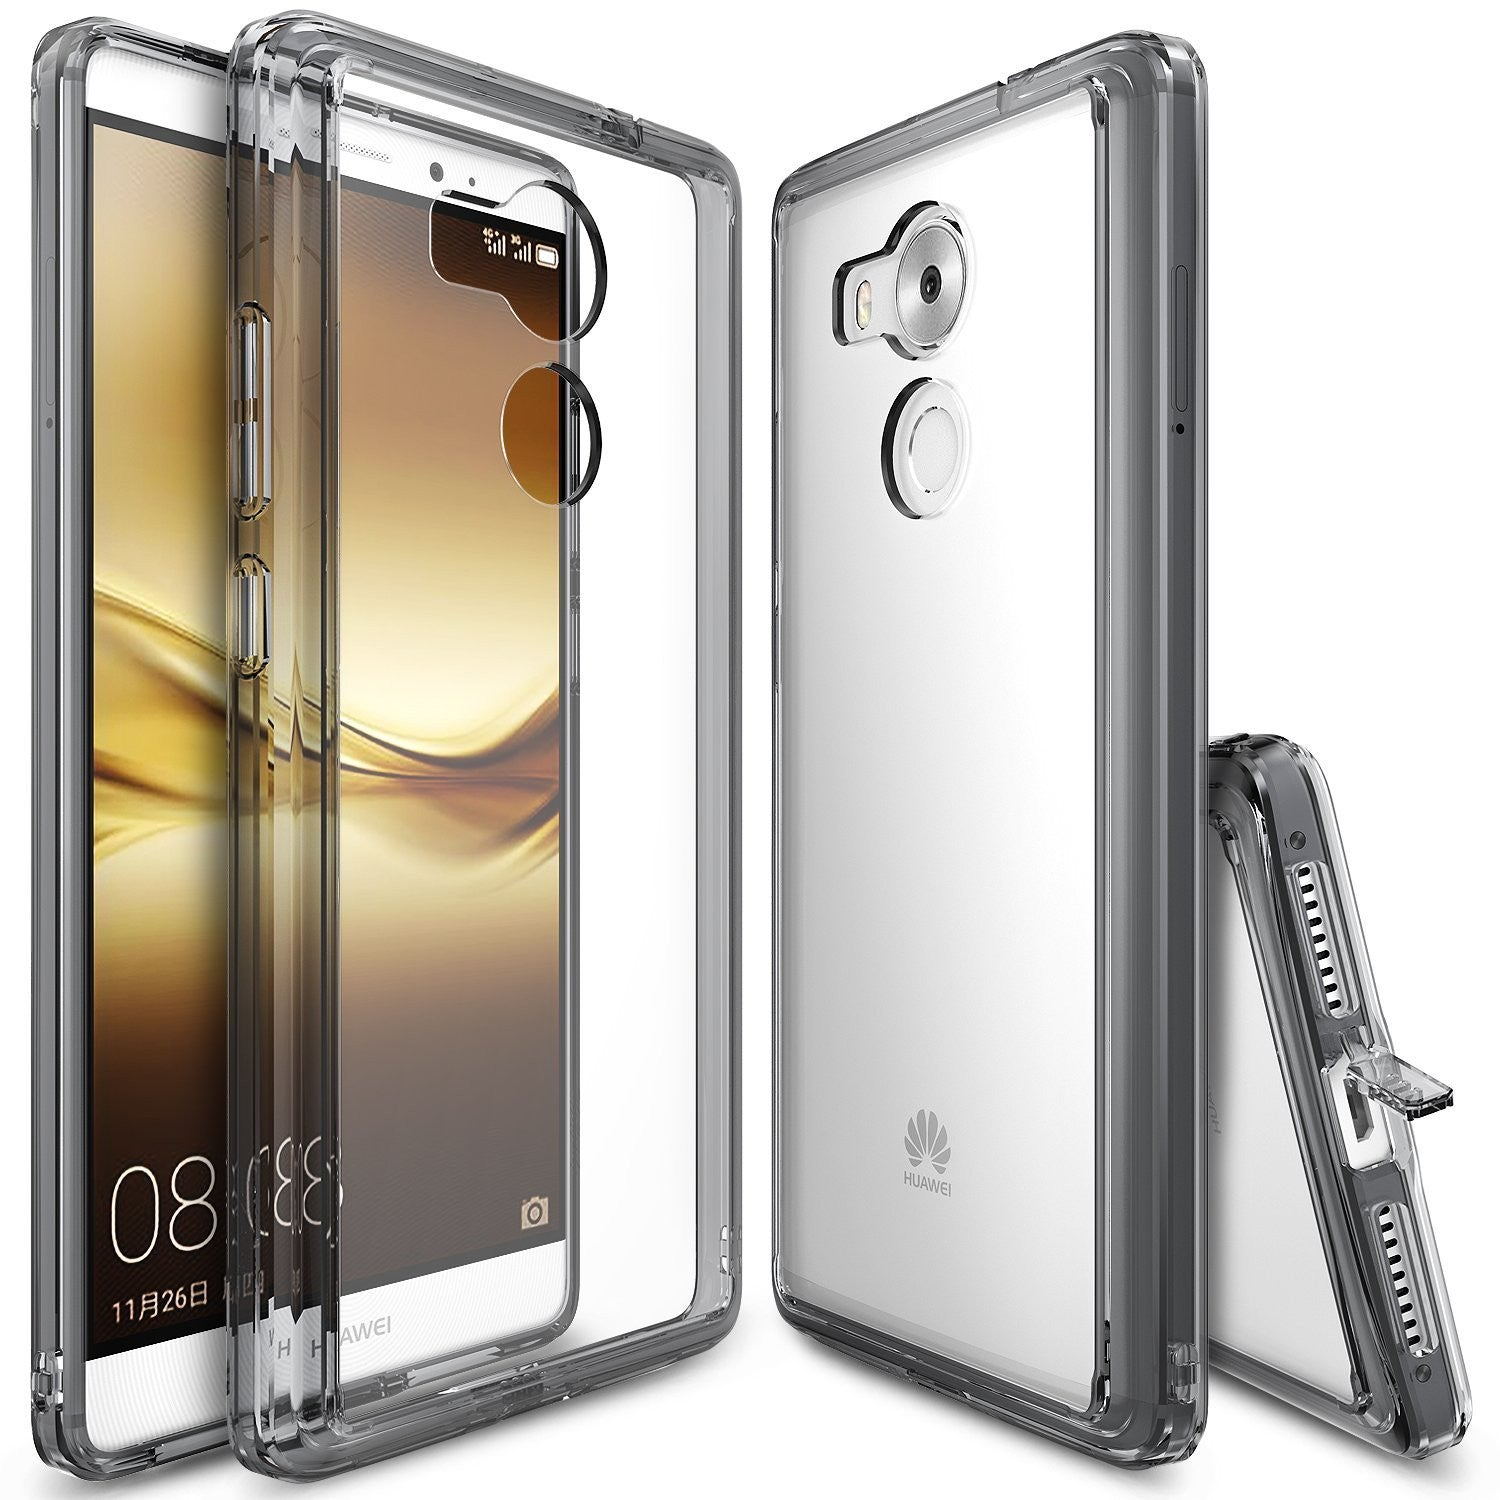 huawei mate 8 case, ringke fusion case crystal clear pc back tpu bumper case - smoke black